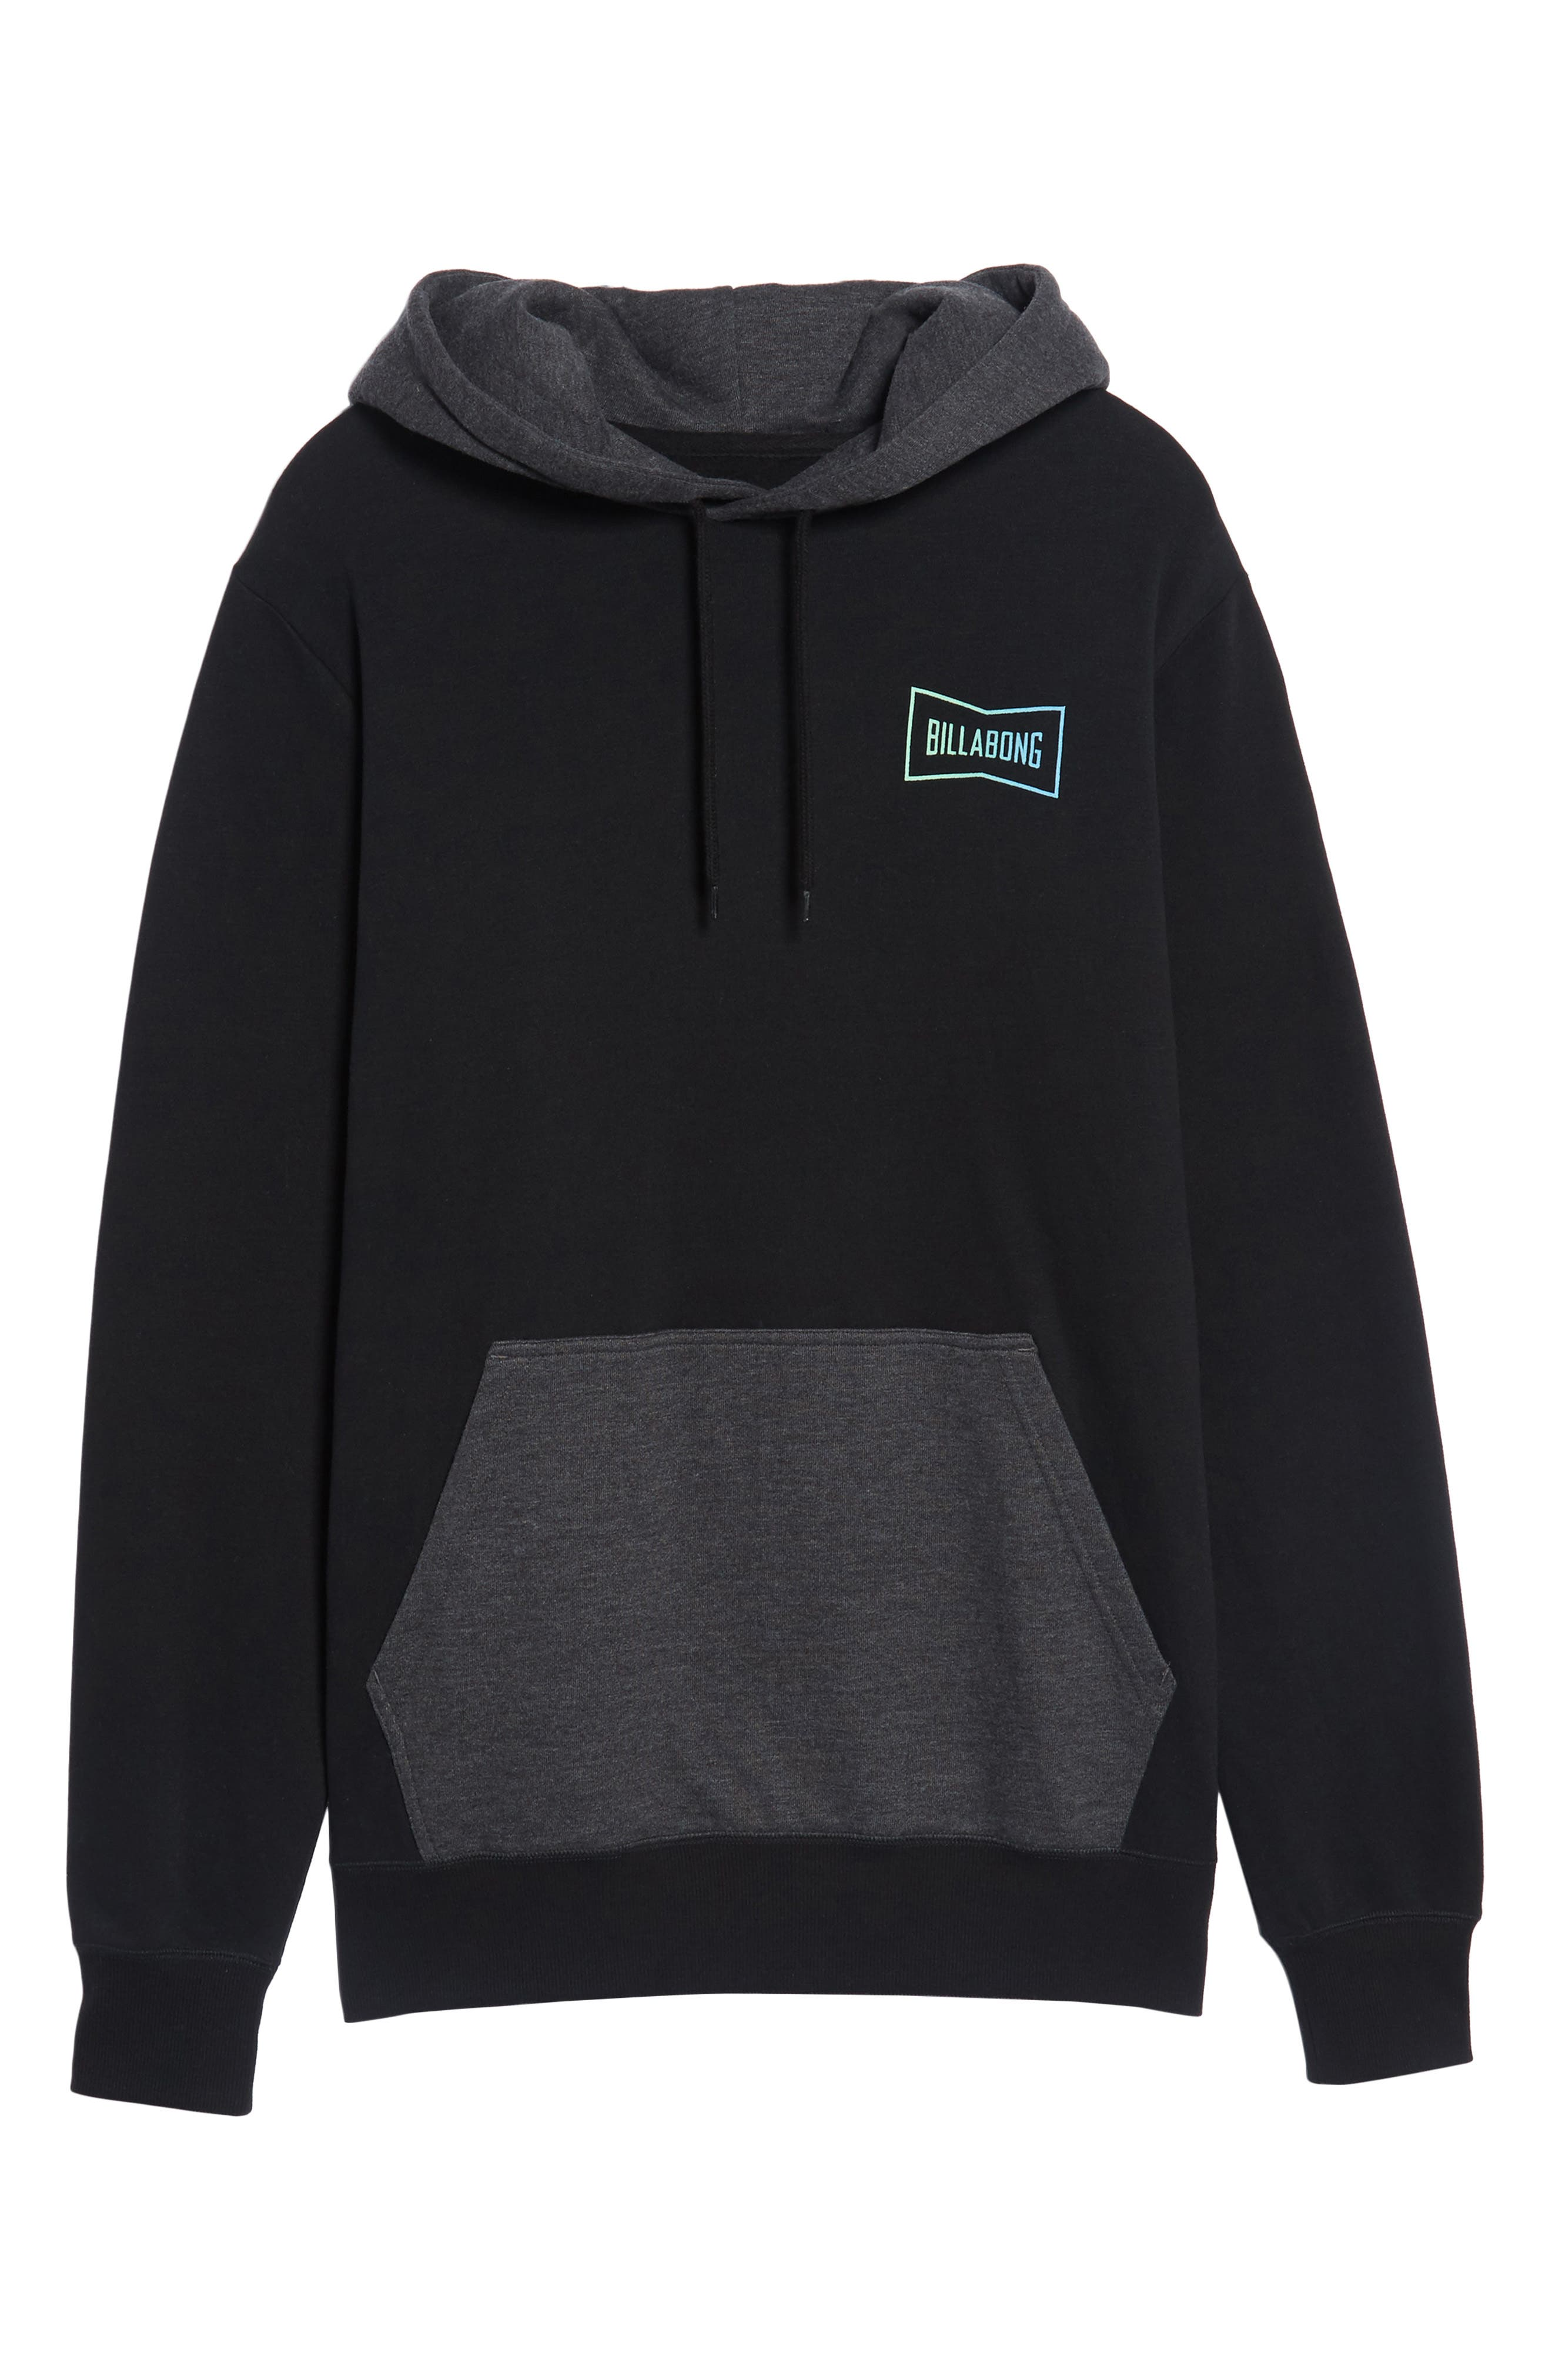 Piston Hoodie,                             Alternate thumbnail 6, color,                             001